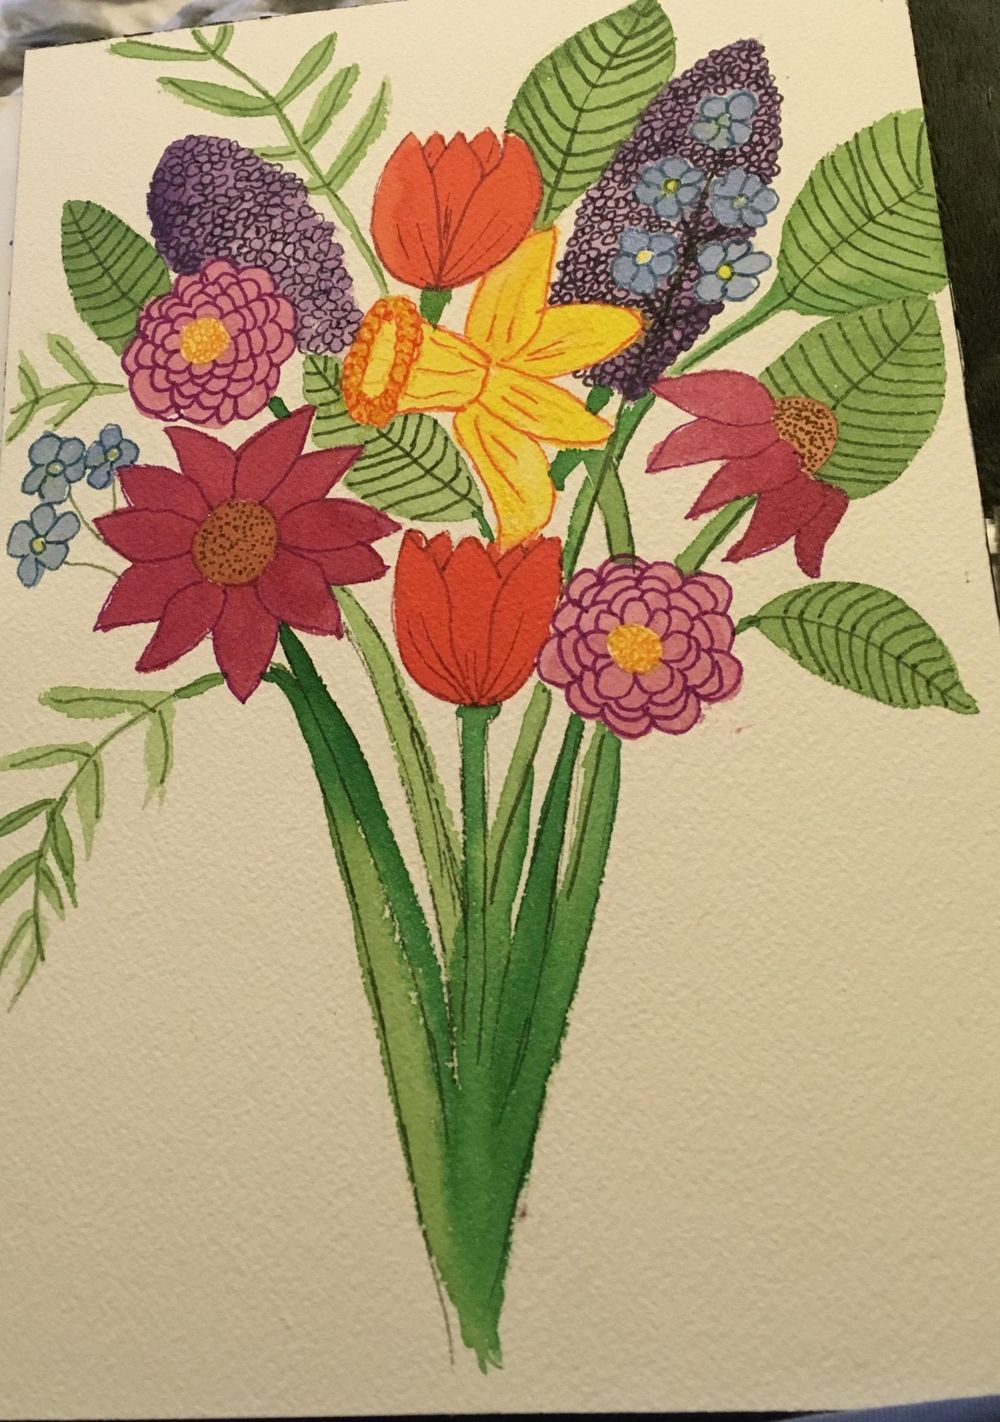 Florals, watercolor and tombow - image 3 - student project